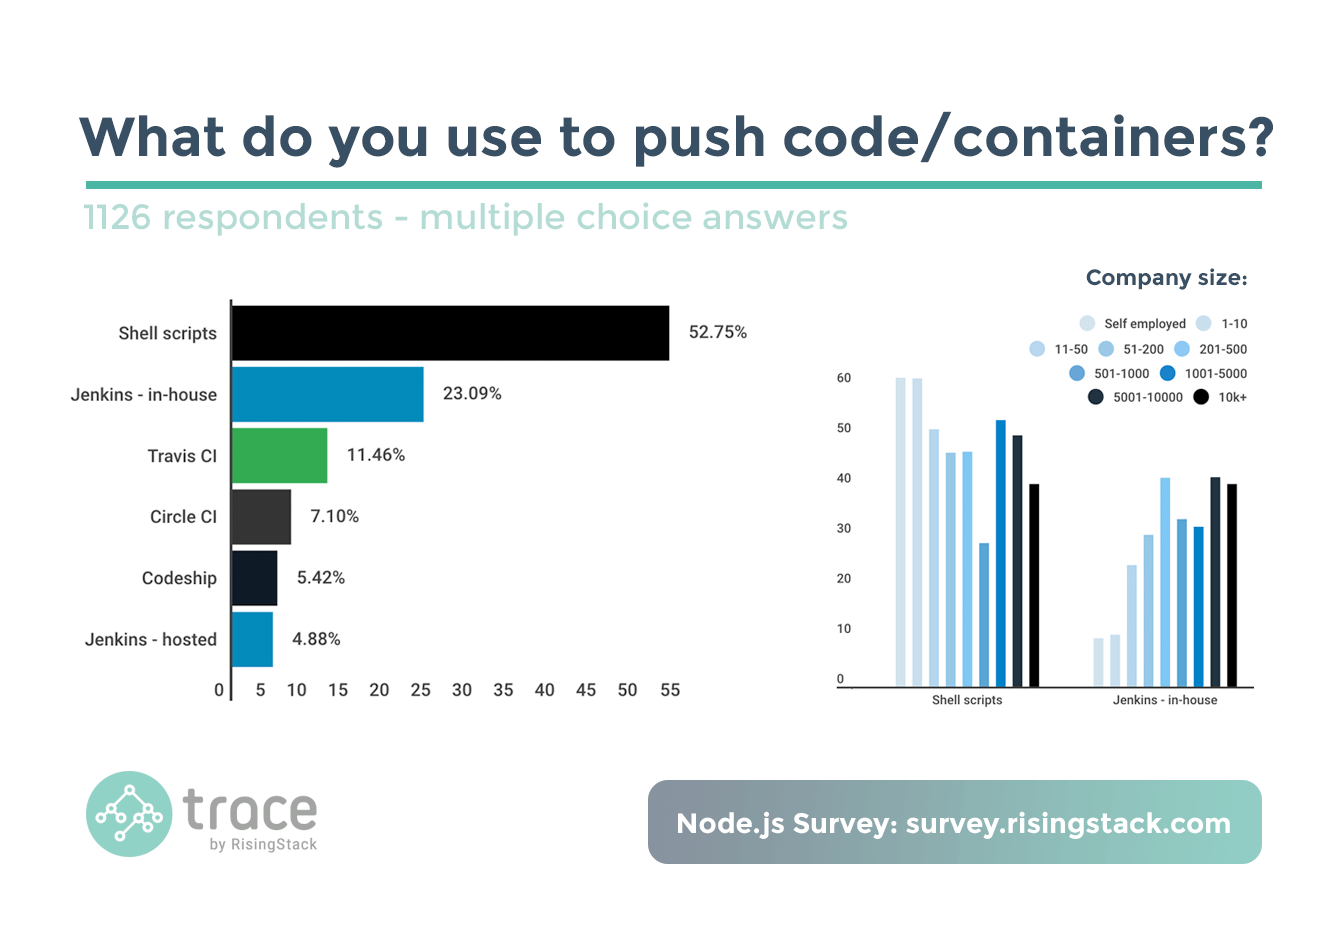 Node.js Survey - What do you use to push code or containers? Shell scripts win.